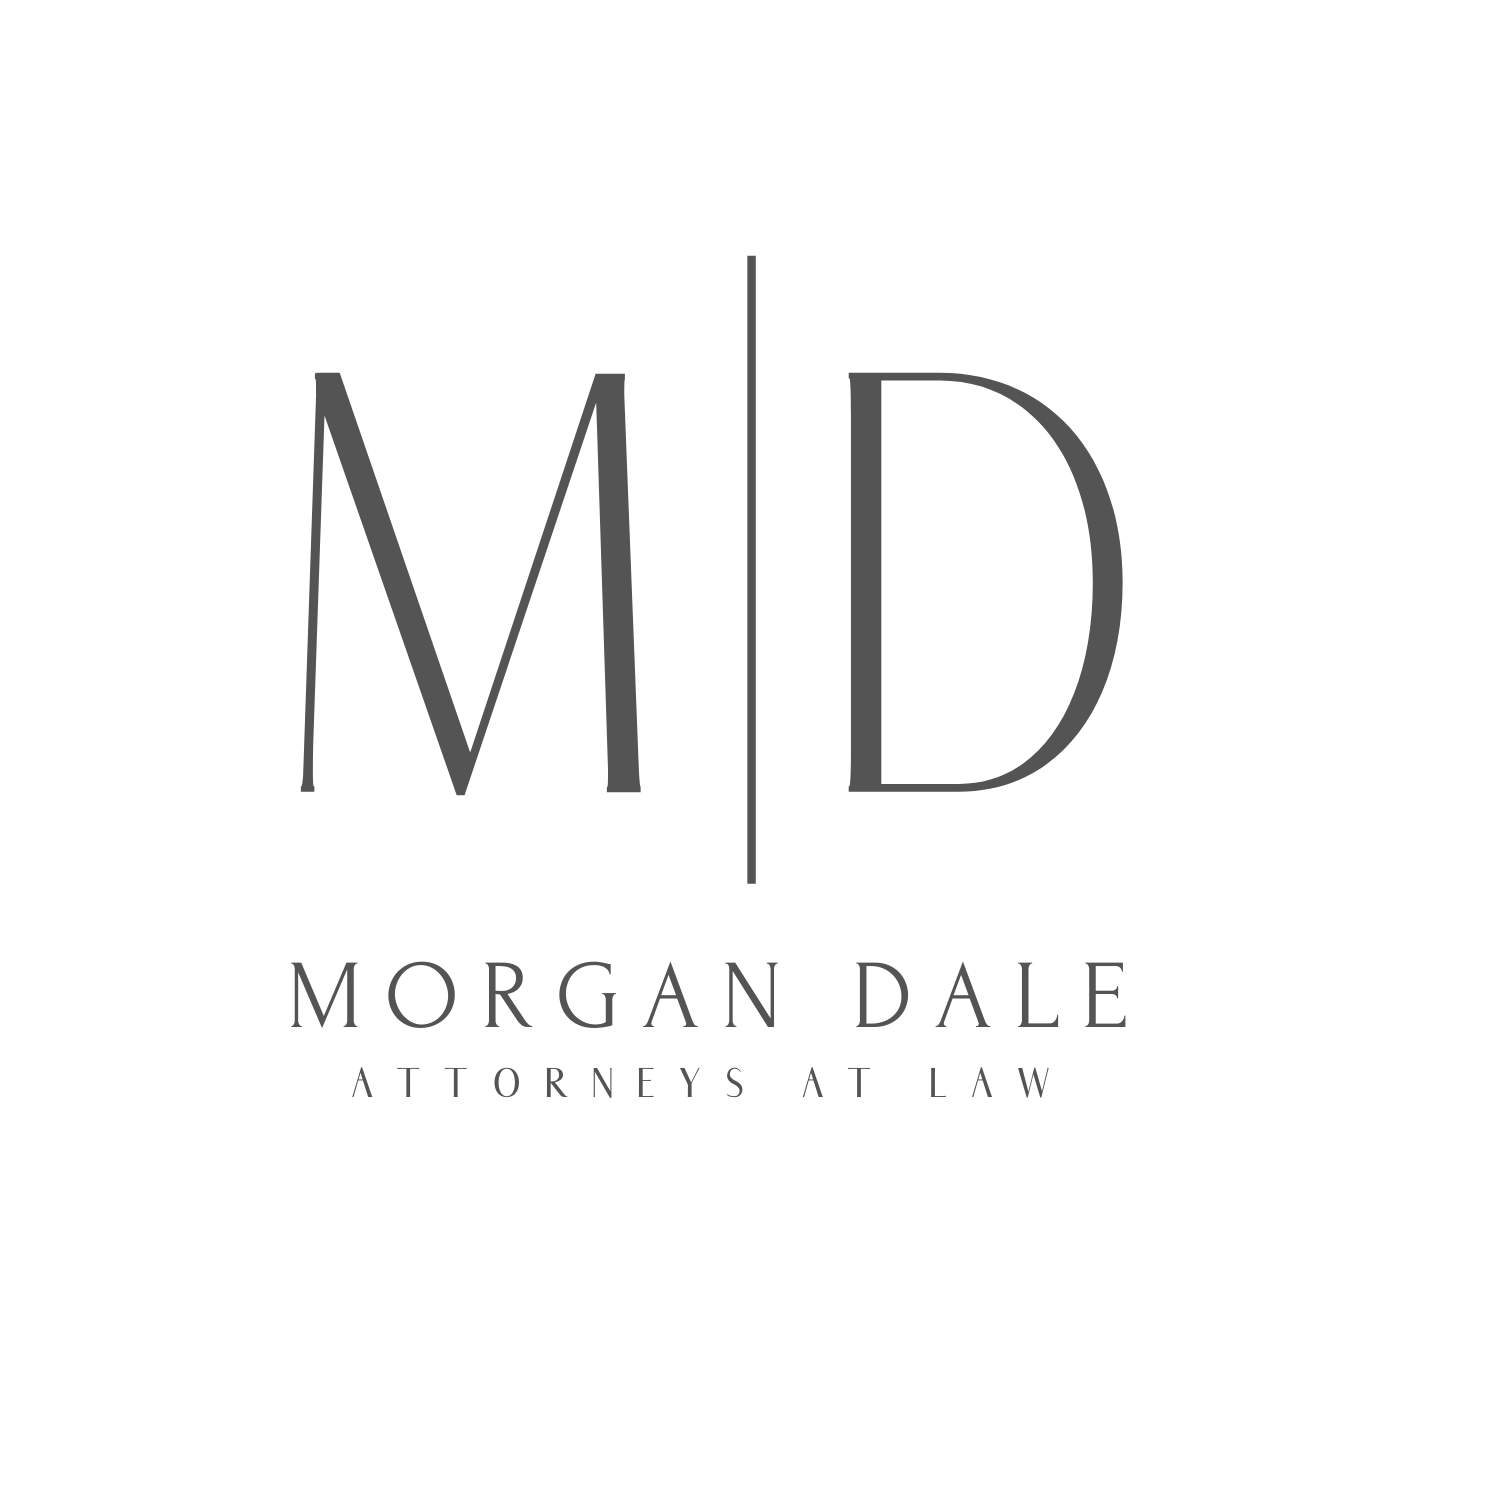 Law Office of Morgan Dale